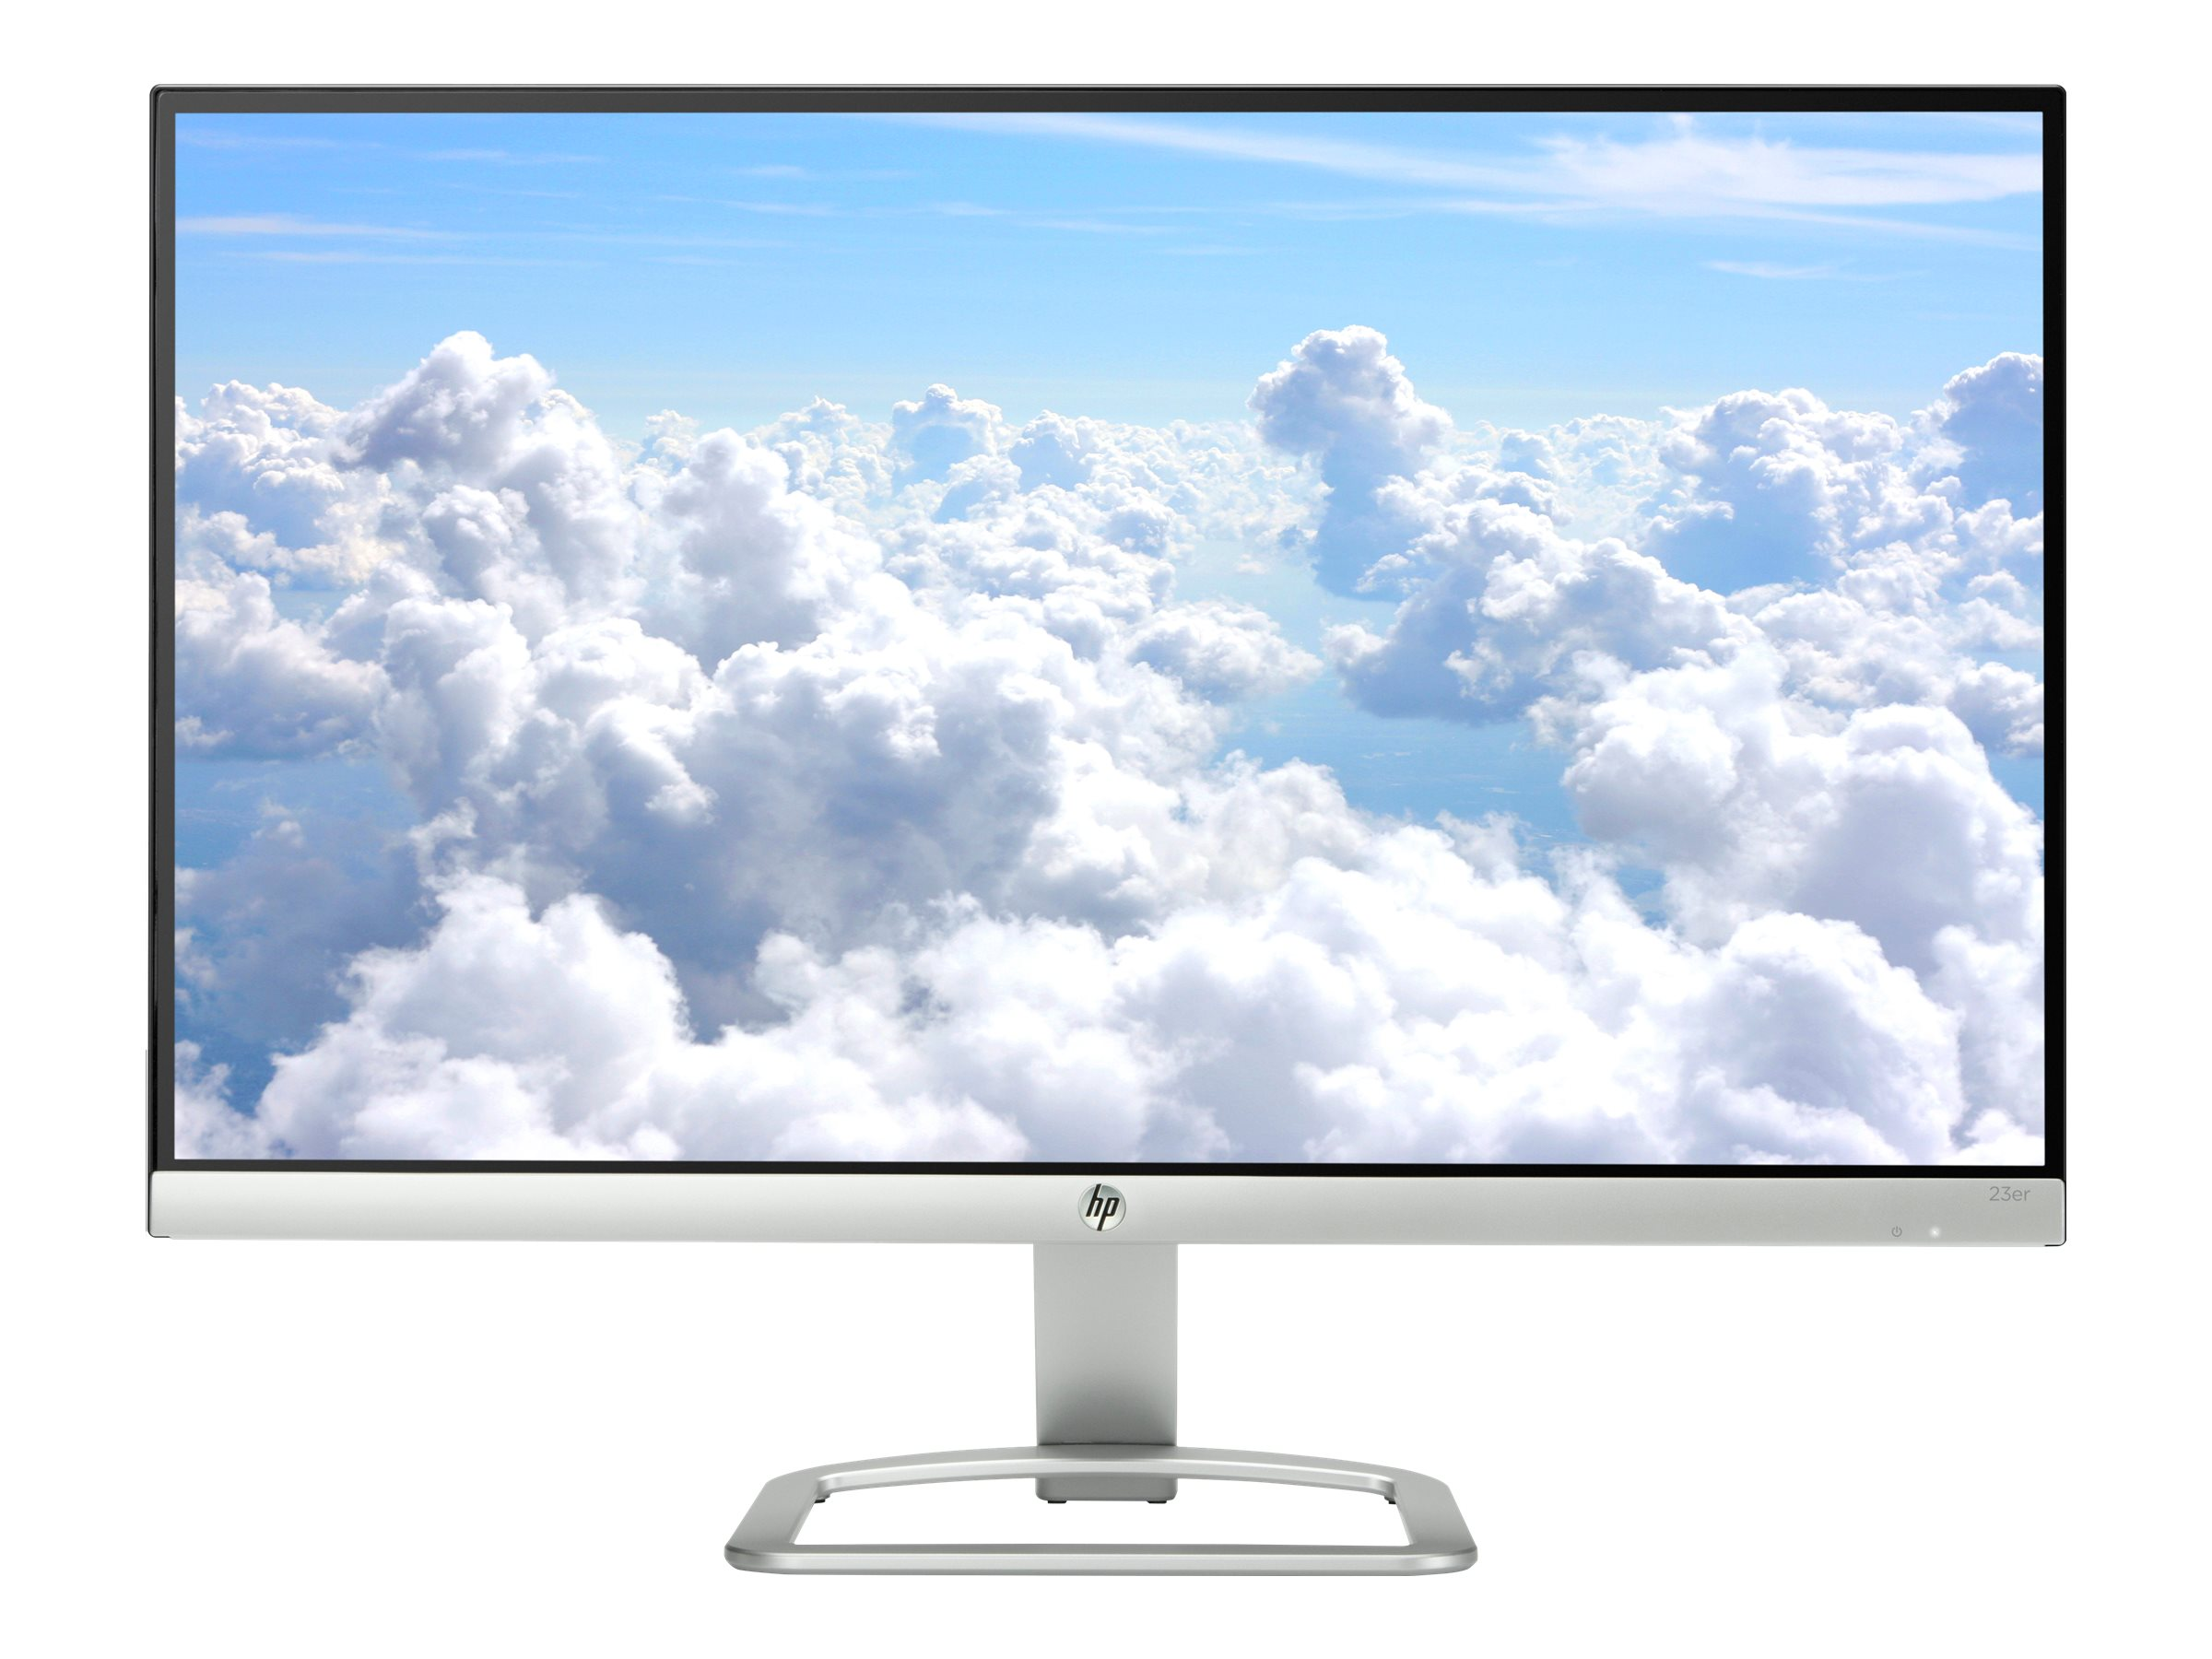 HP 23 23ER Full HD LED-LCD Monitor, White